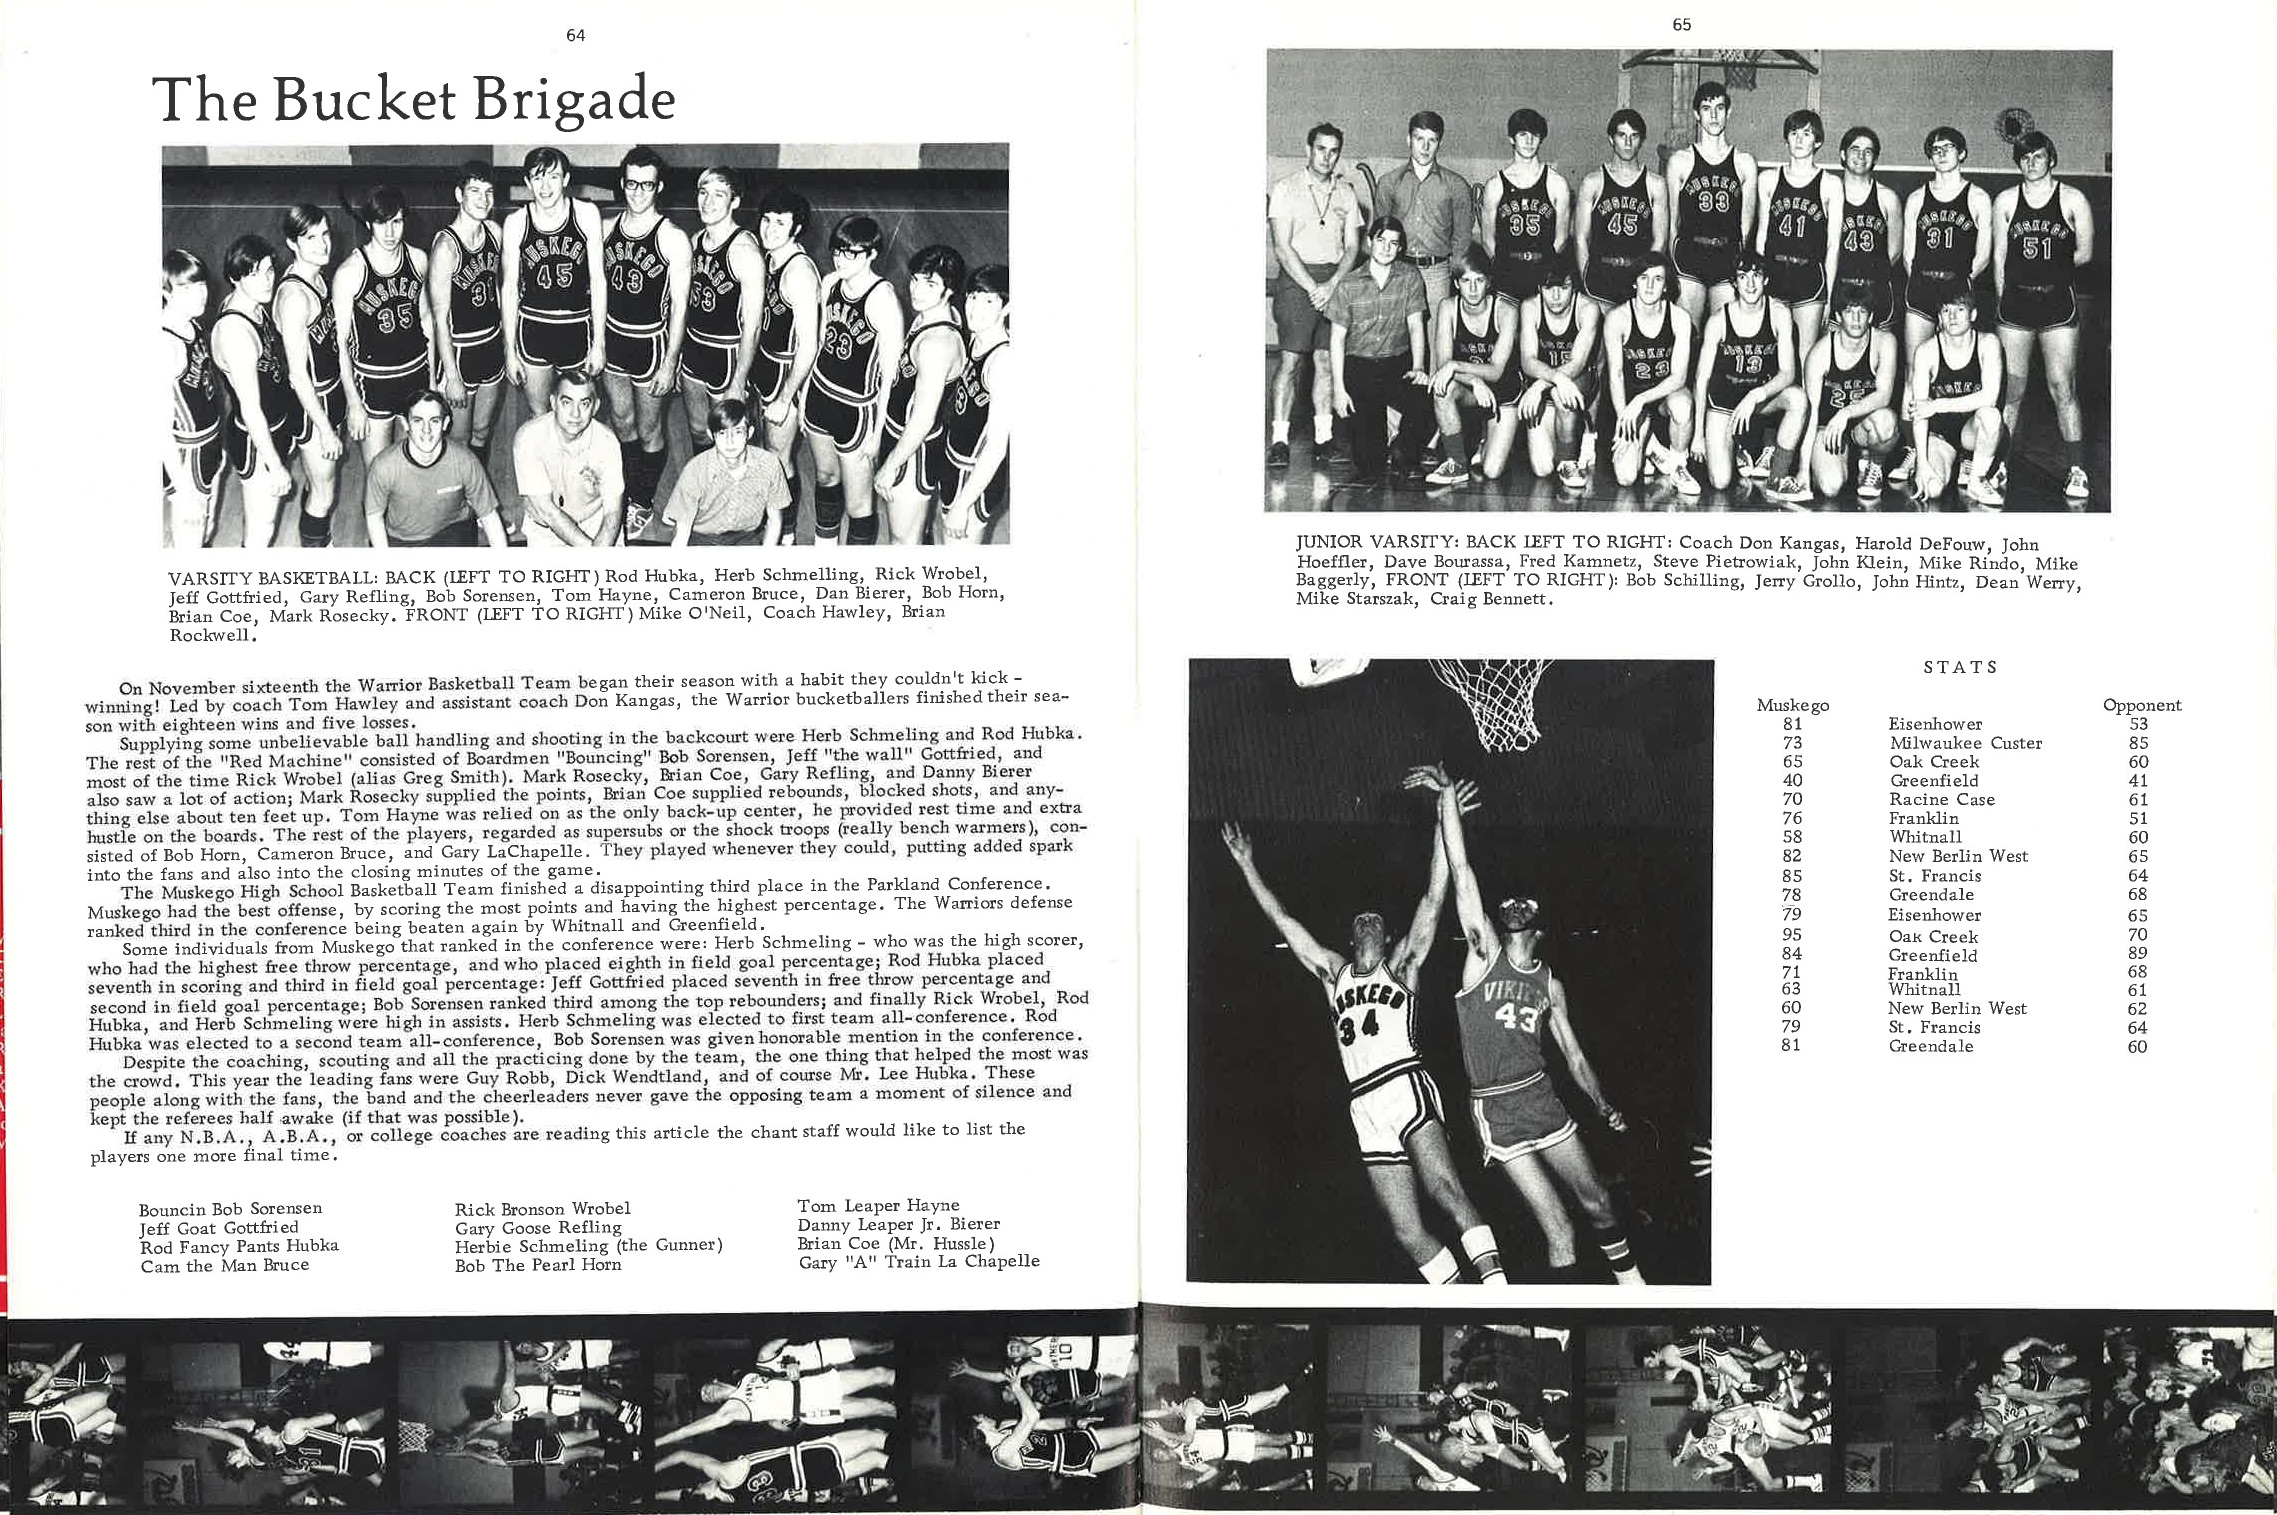 1972_Yearbook_64-65.jpg